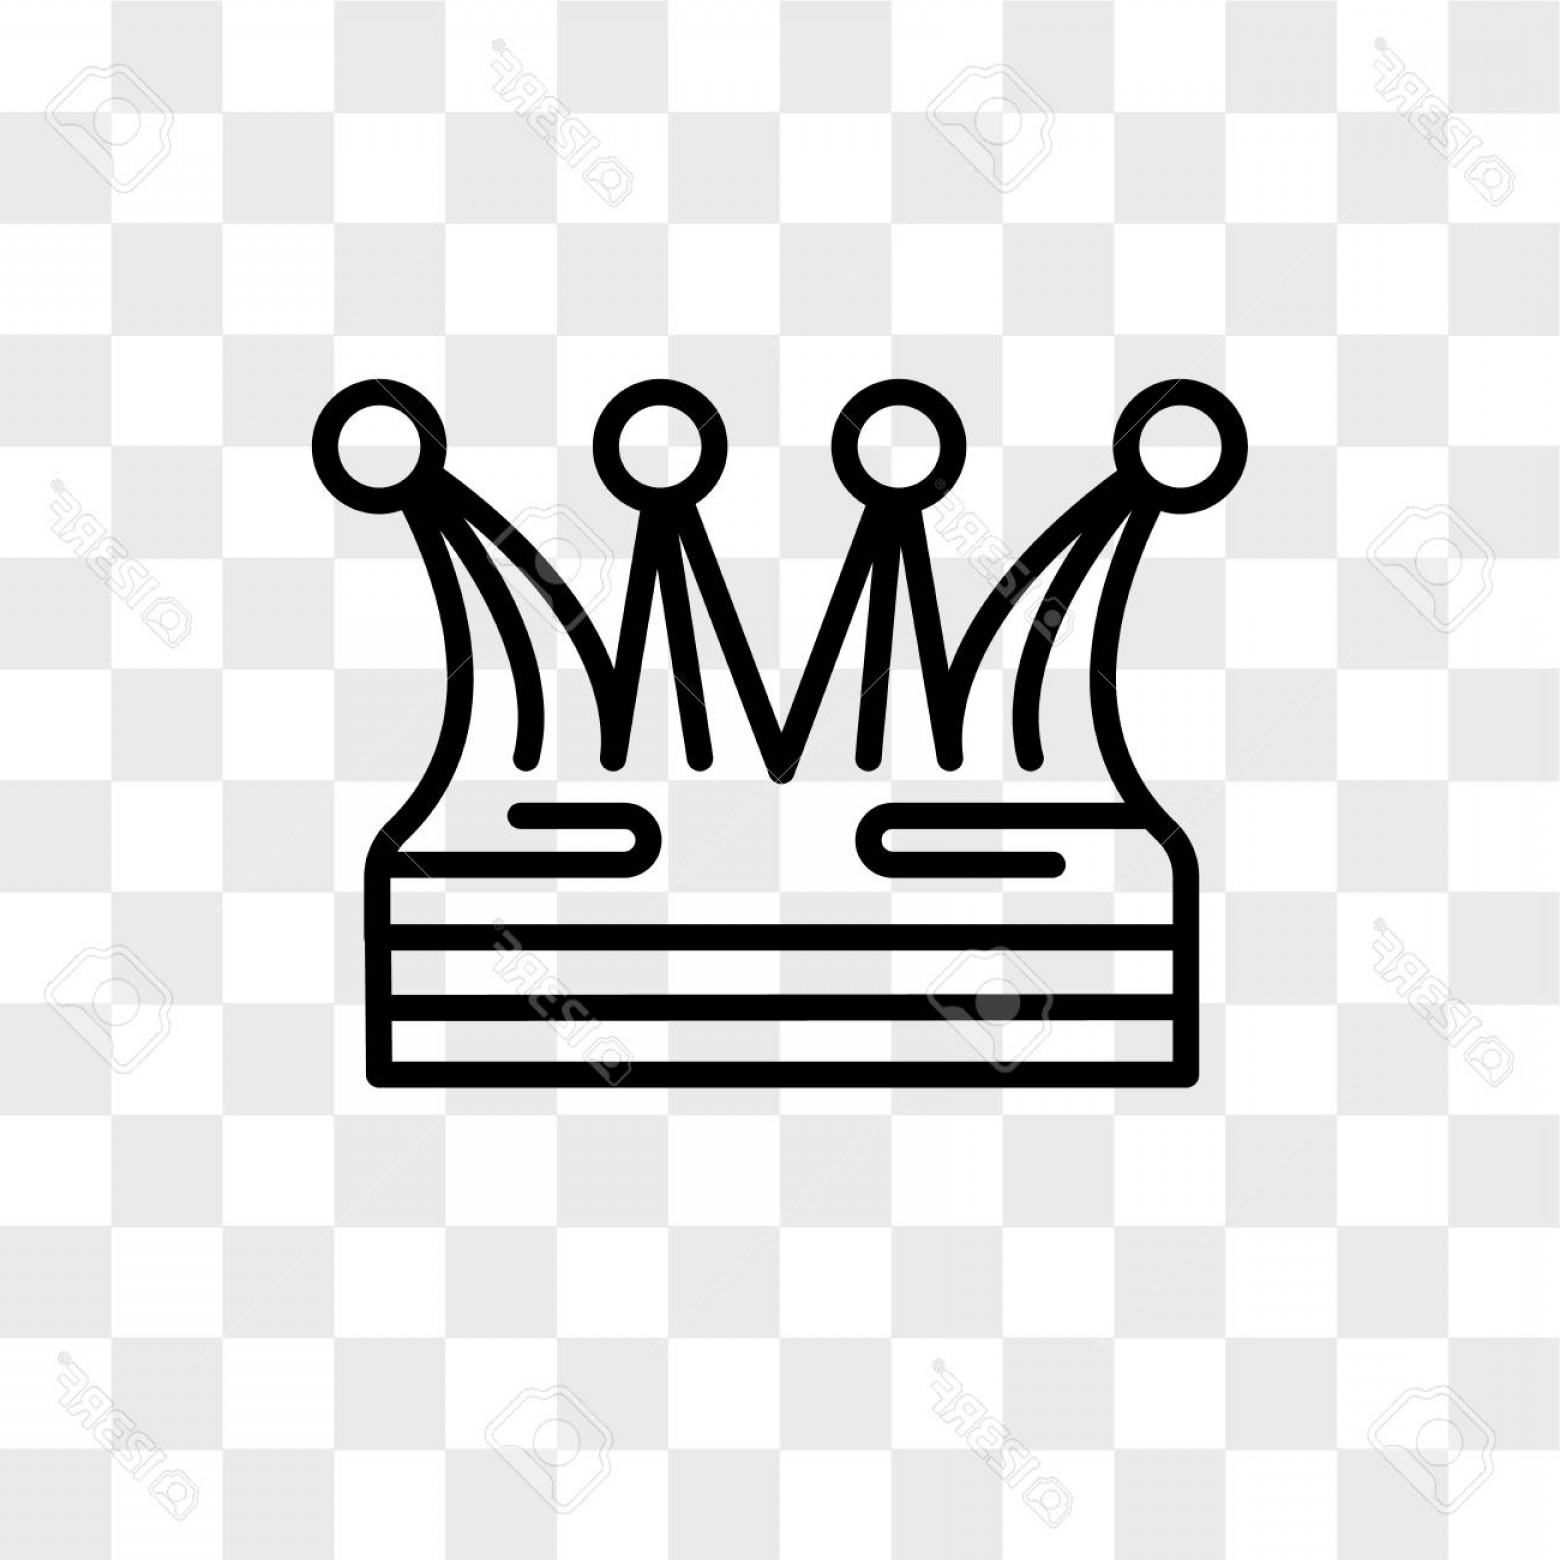 Transparent Queen Crown Vector: Photostock Vector Crown Vector Icon Isolated On Transparent Background Crown Logo Concept